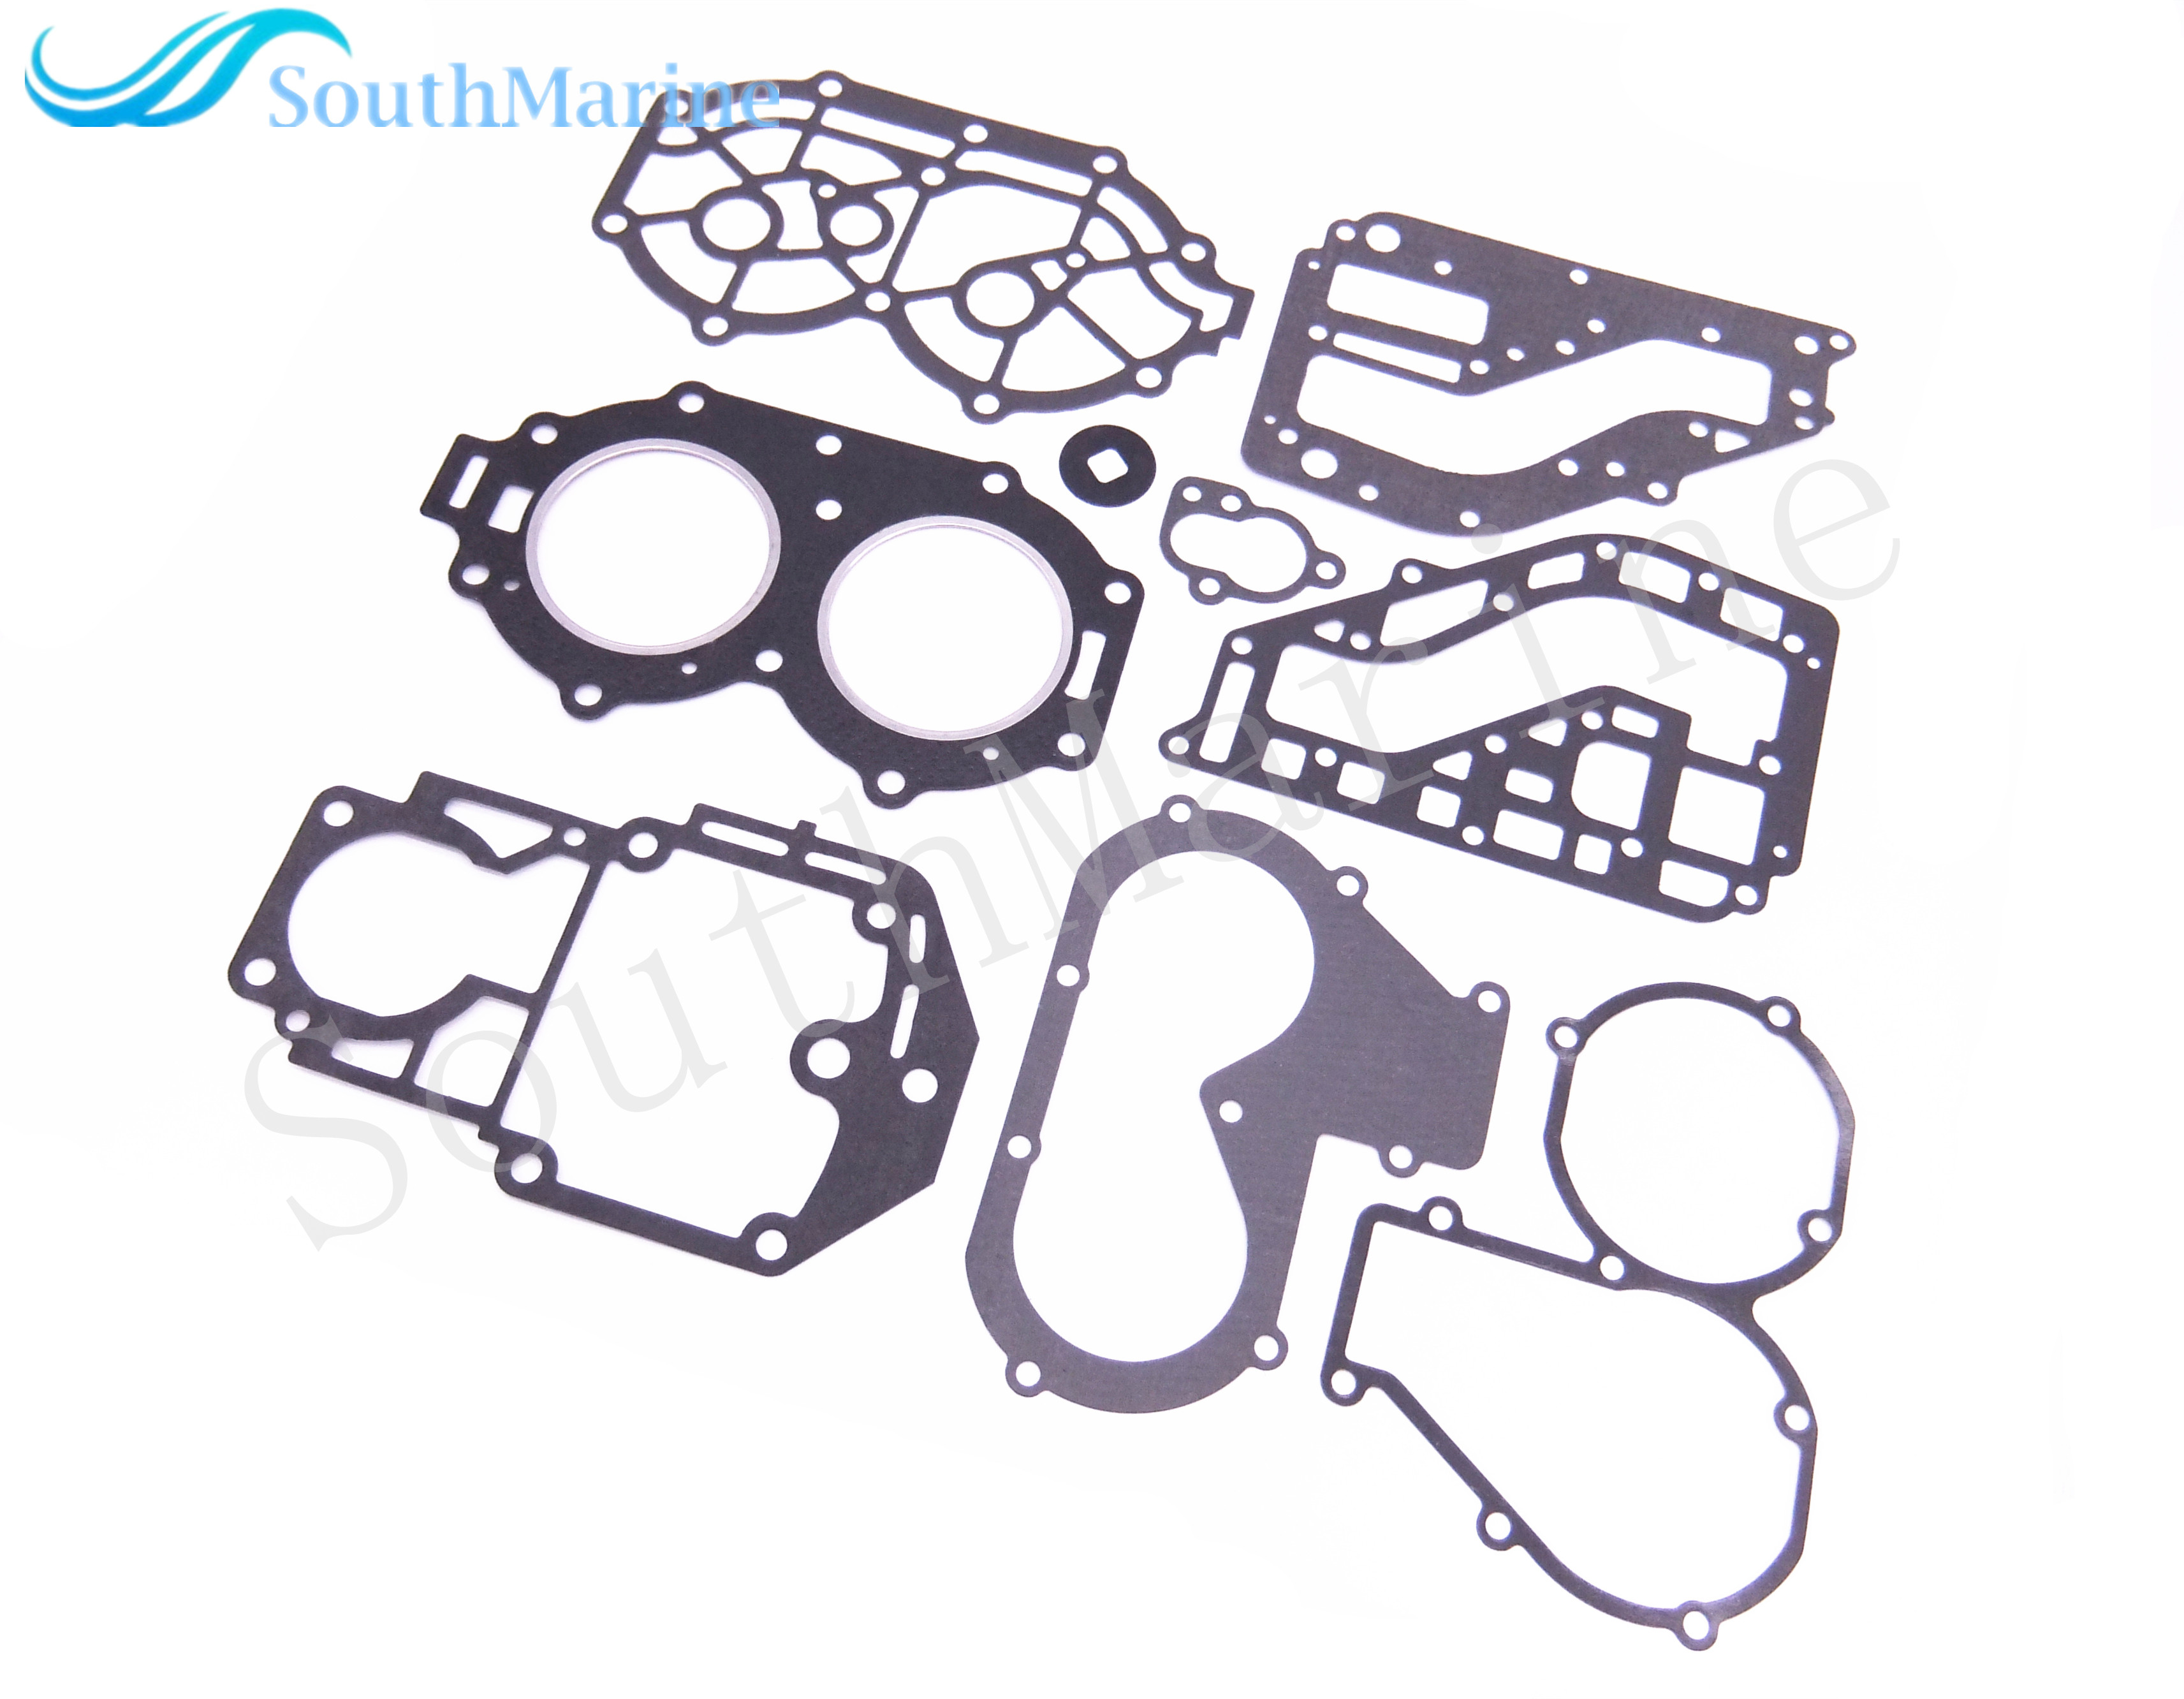 Outboard Engine Complete Power Head Seal Gasket Kit for Parsun HDX T20 T25 T30A Boat Motor Free ShippingOutboard Engine Complete Power Head Seal Gasket Kit for Parsun HDX T20 T25 T30A Boat Motor Free Shipping